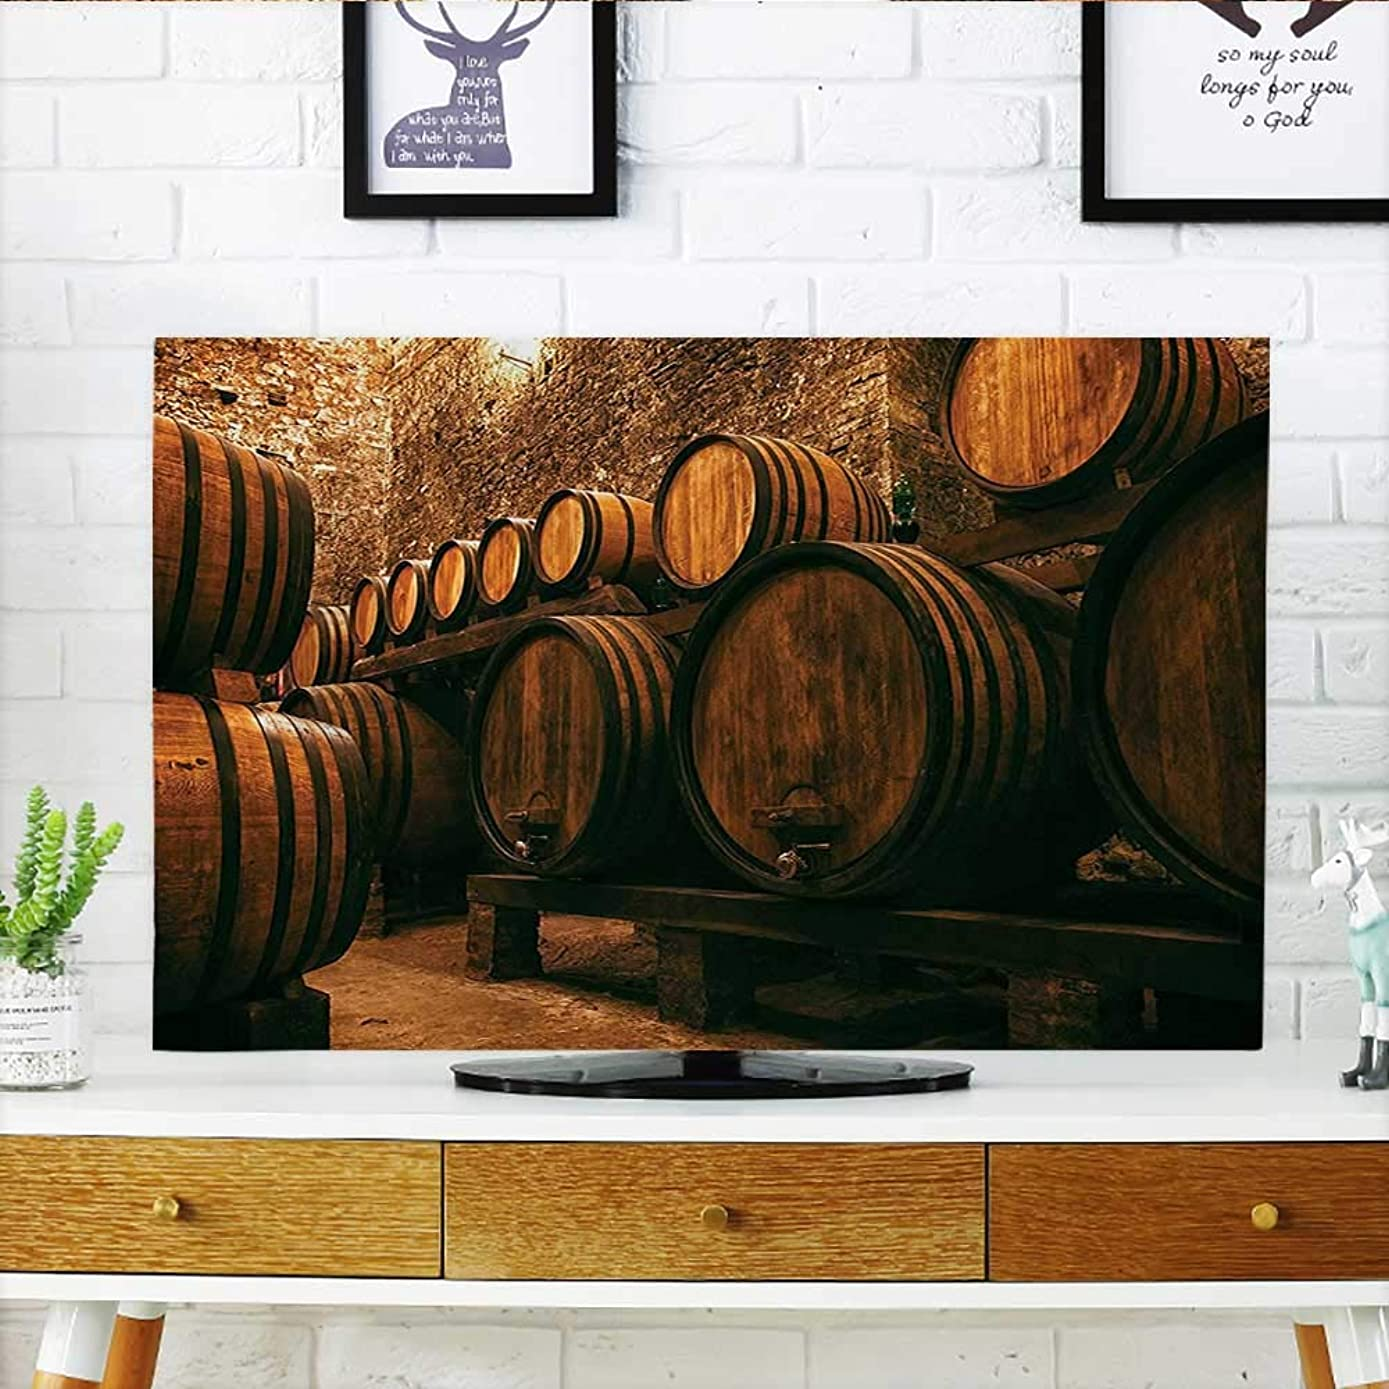 Jiahonghome Protect Your TV Collection Barrels for Storage of Wine Italy Oak Container in Cold Dark Underground Protect Your TV W35 x H55 INCH/TV 60